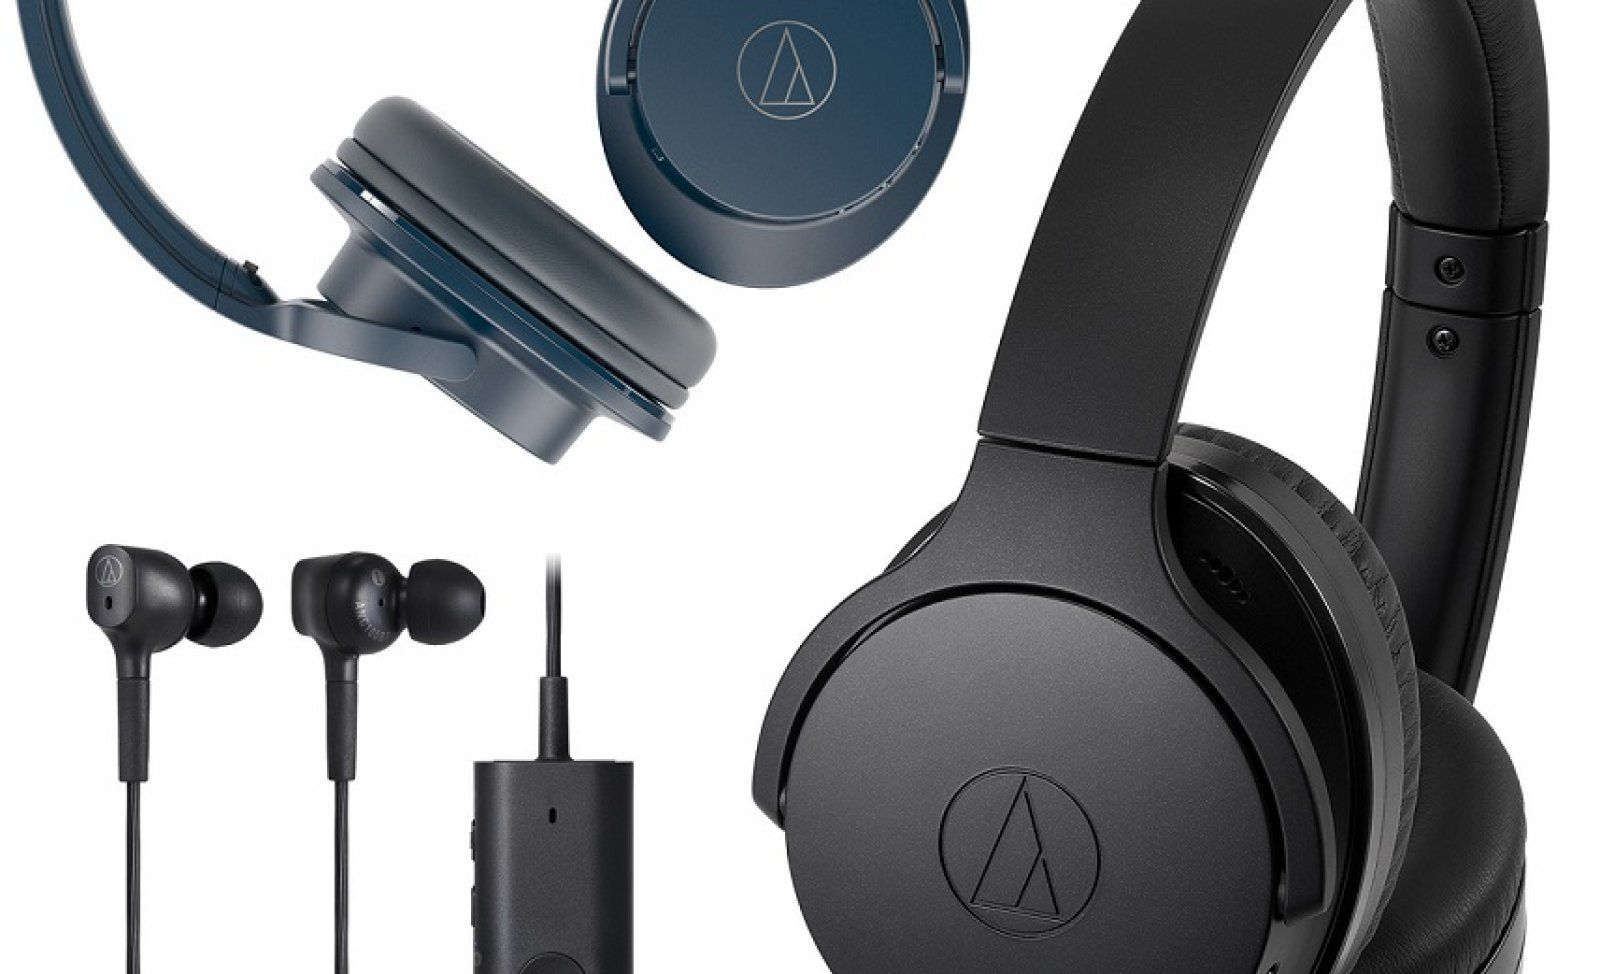 Top 5 Best Audiophile Headphones For Business Use In 2019 Headphones Audiophile Headphones Wireless Headphones